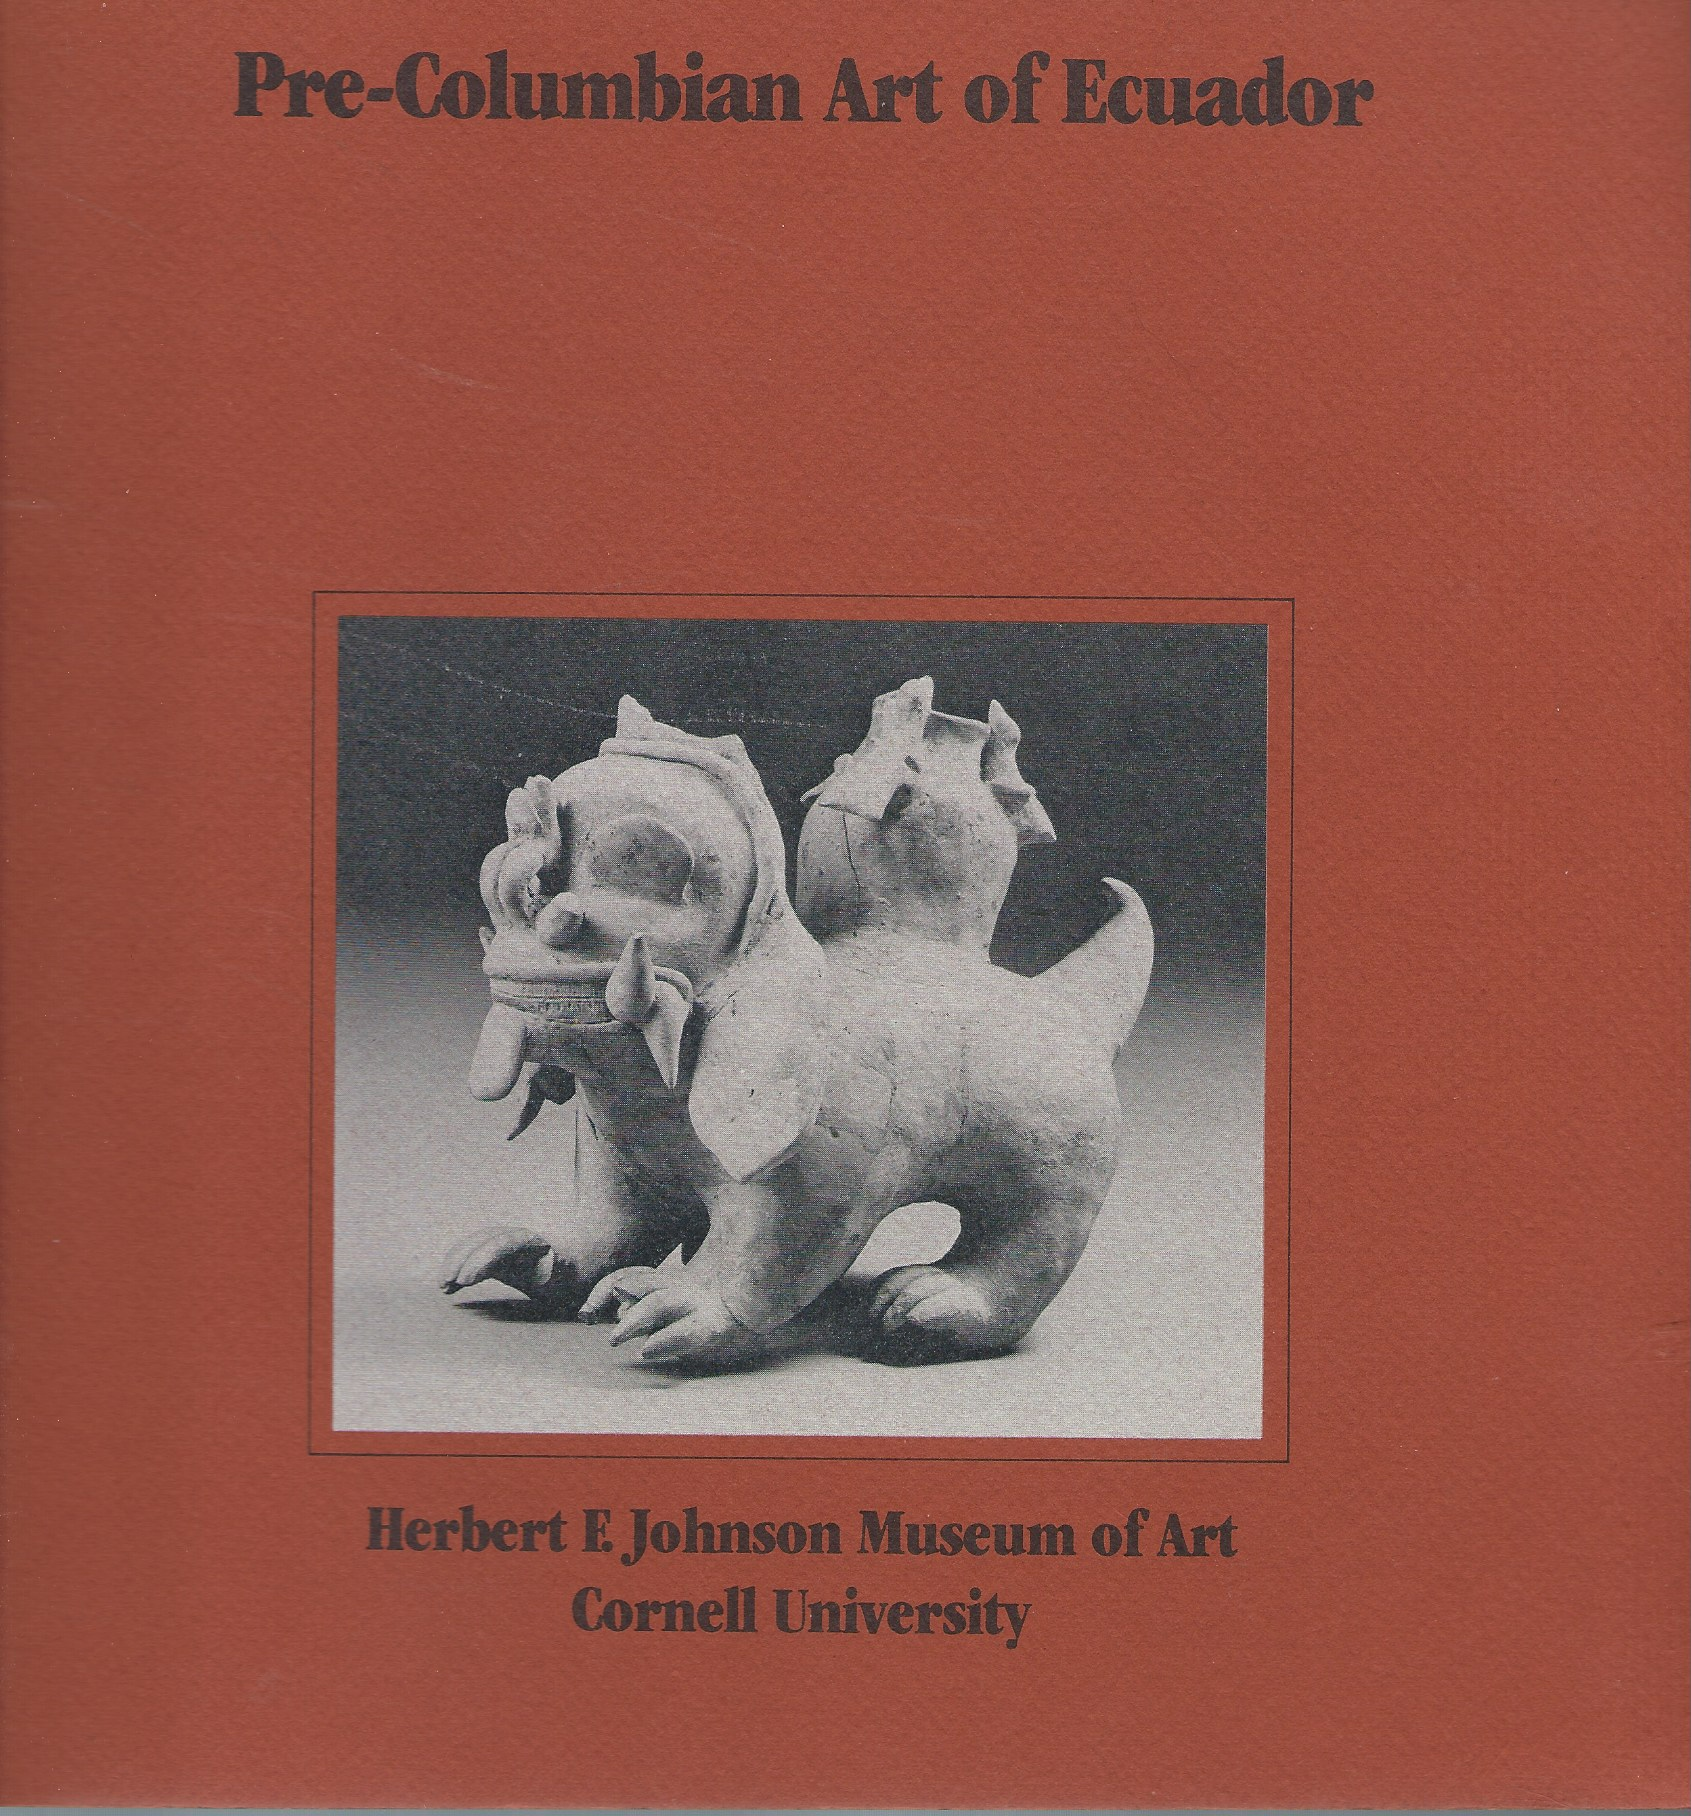 Image for From the Peggy & Tessim Zorach Collection; PRE-COLUMBIAN ART OF ECUADOR